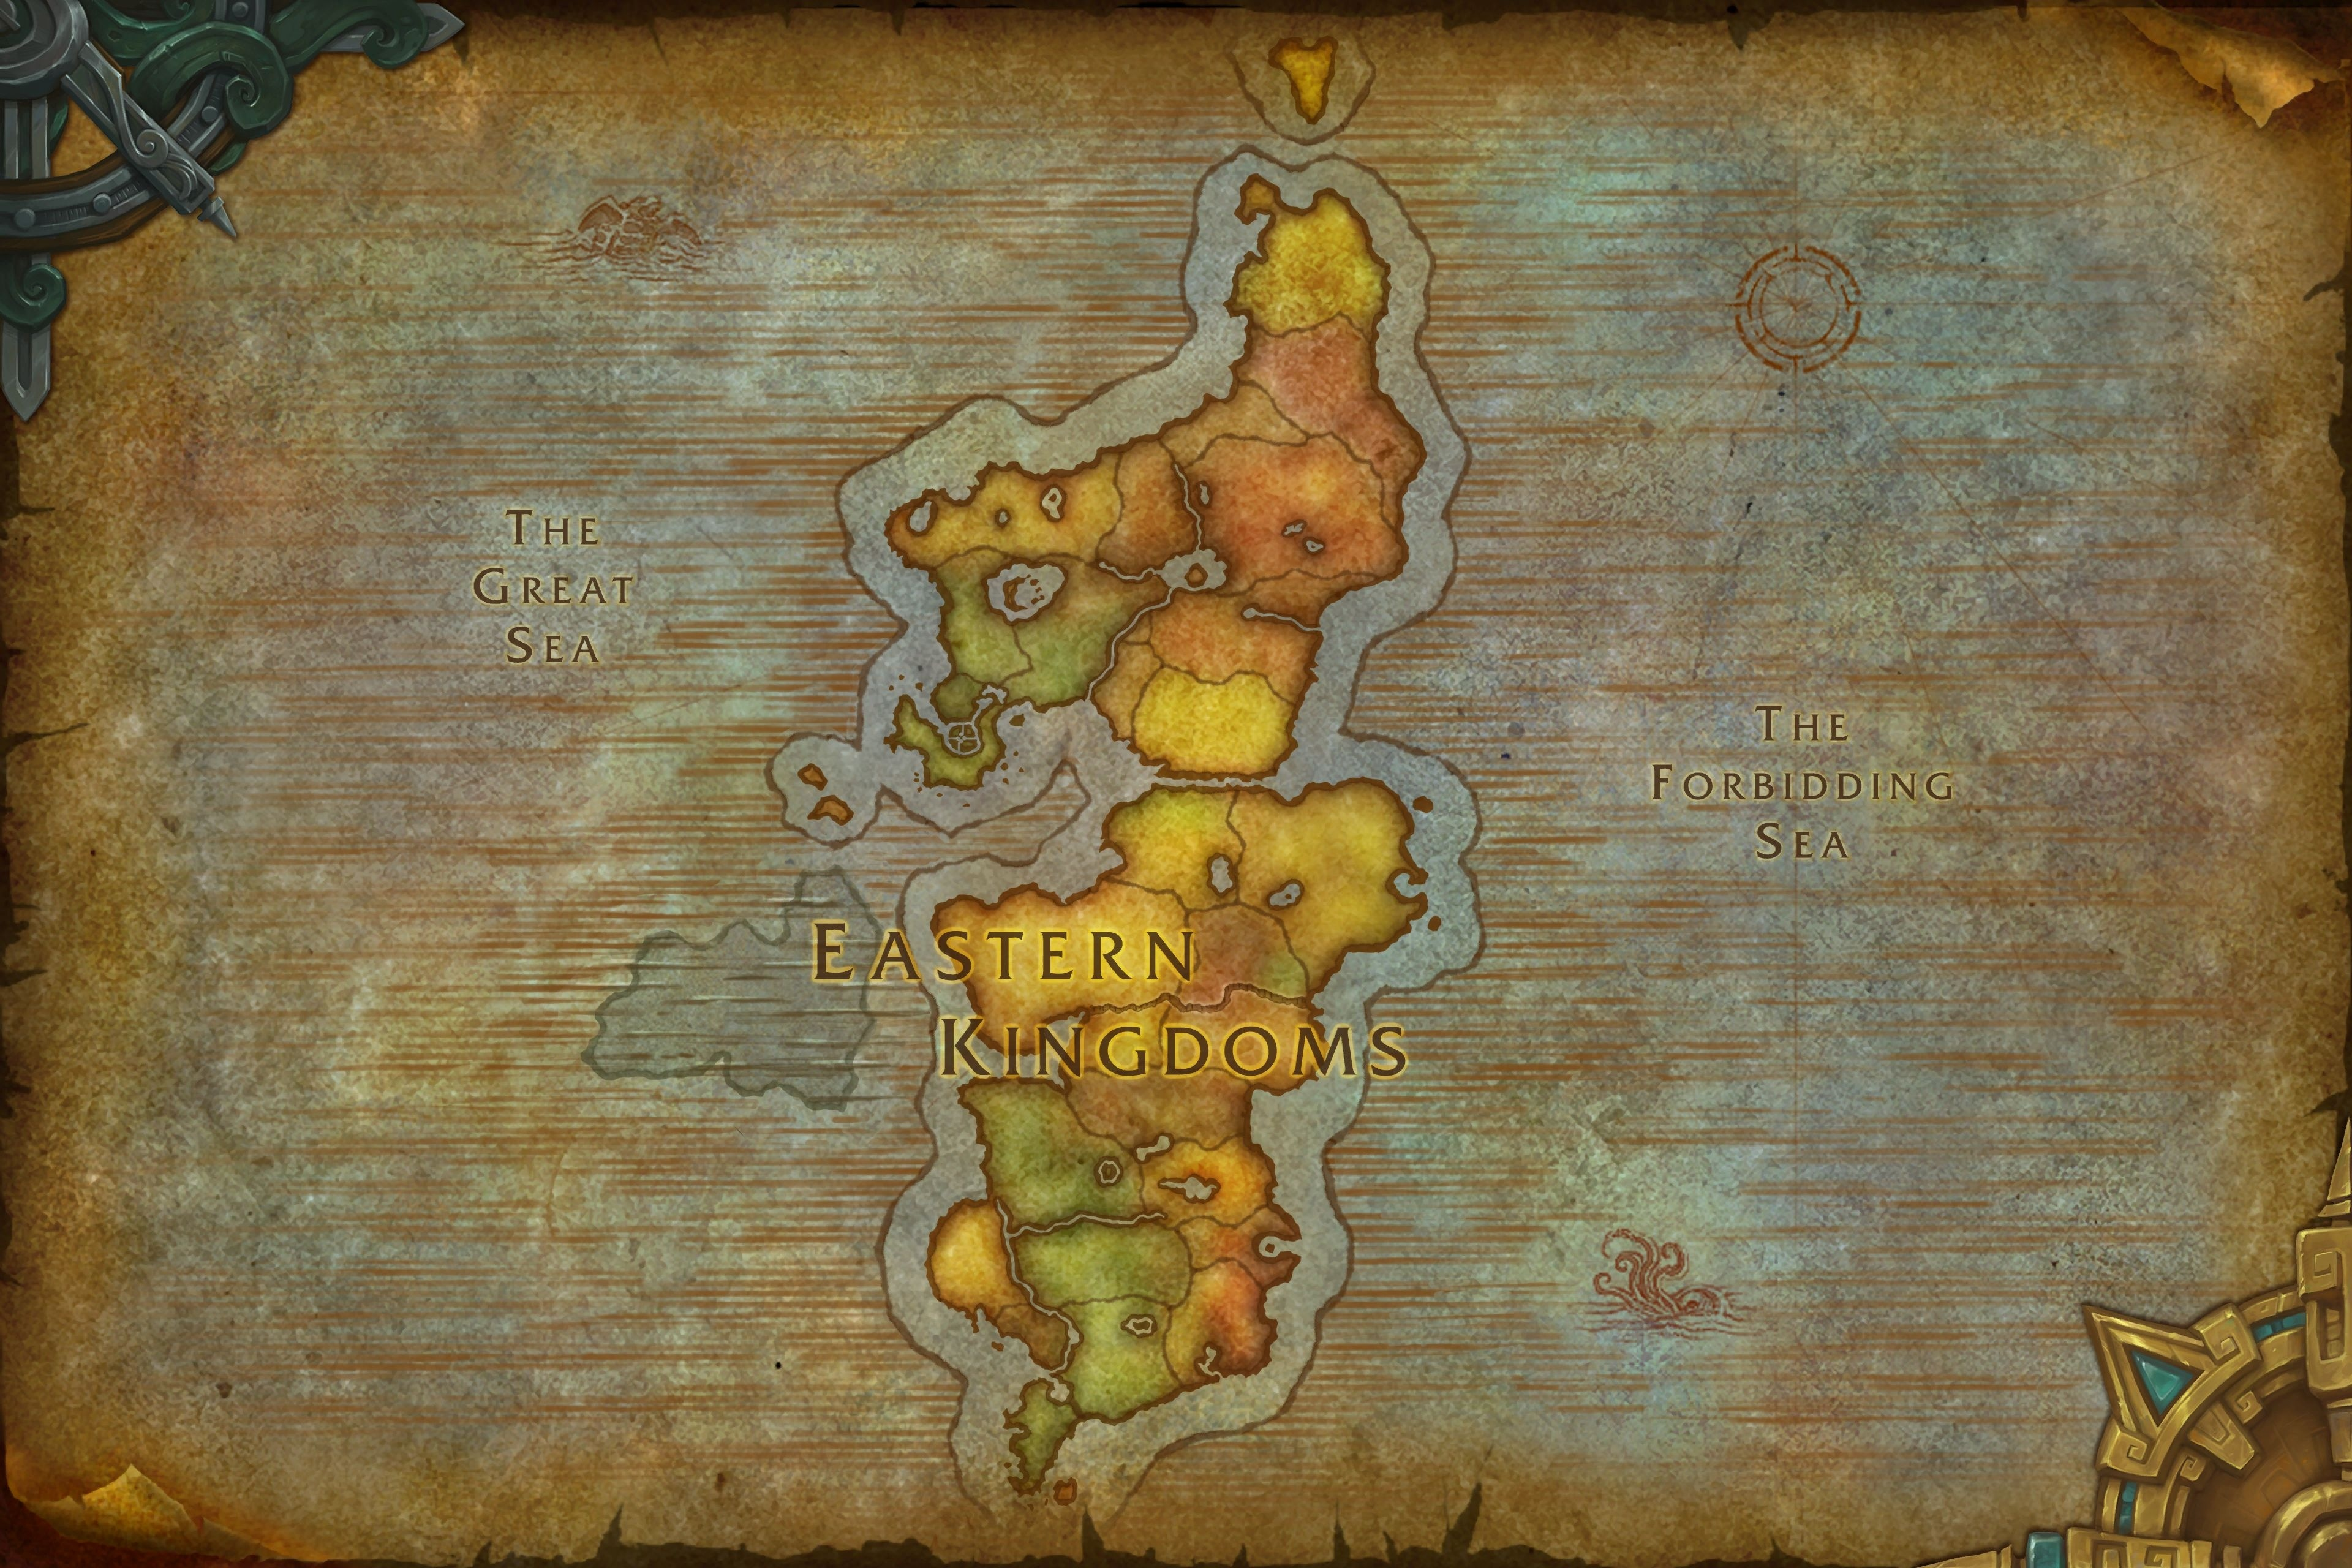 Patch 8.1 PTR 27826 - New Maps - Kalimdor, Eastern Kingdoms ... on molten core map, eastern kingdoms map, guild wars 2 gendarran fields map, dragonblight map, stormwind map, undercity map, ashenvale map, azeroth map, netherstorm map, darkshore map, desolace map, dustwallow marsh map, thousand needles map, draenor map, orgrimmar map, lordaeron map, wrath of the lich king map, emerald dream map, wow fossil dig sites map, bloodmyst isle map,